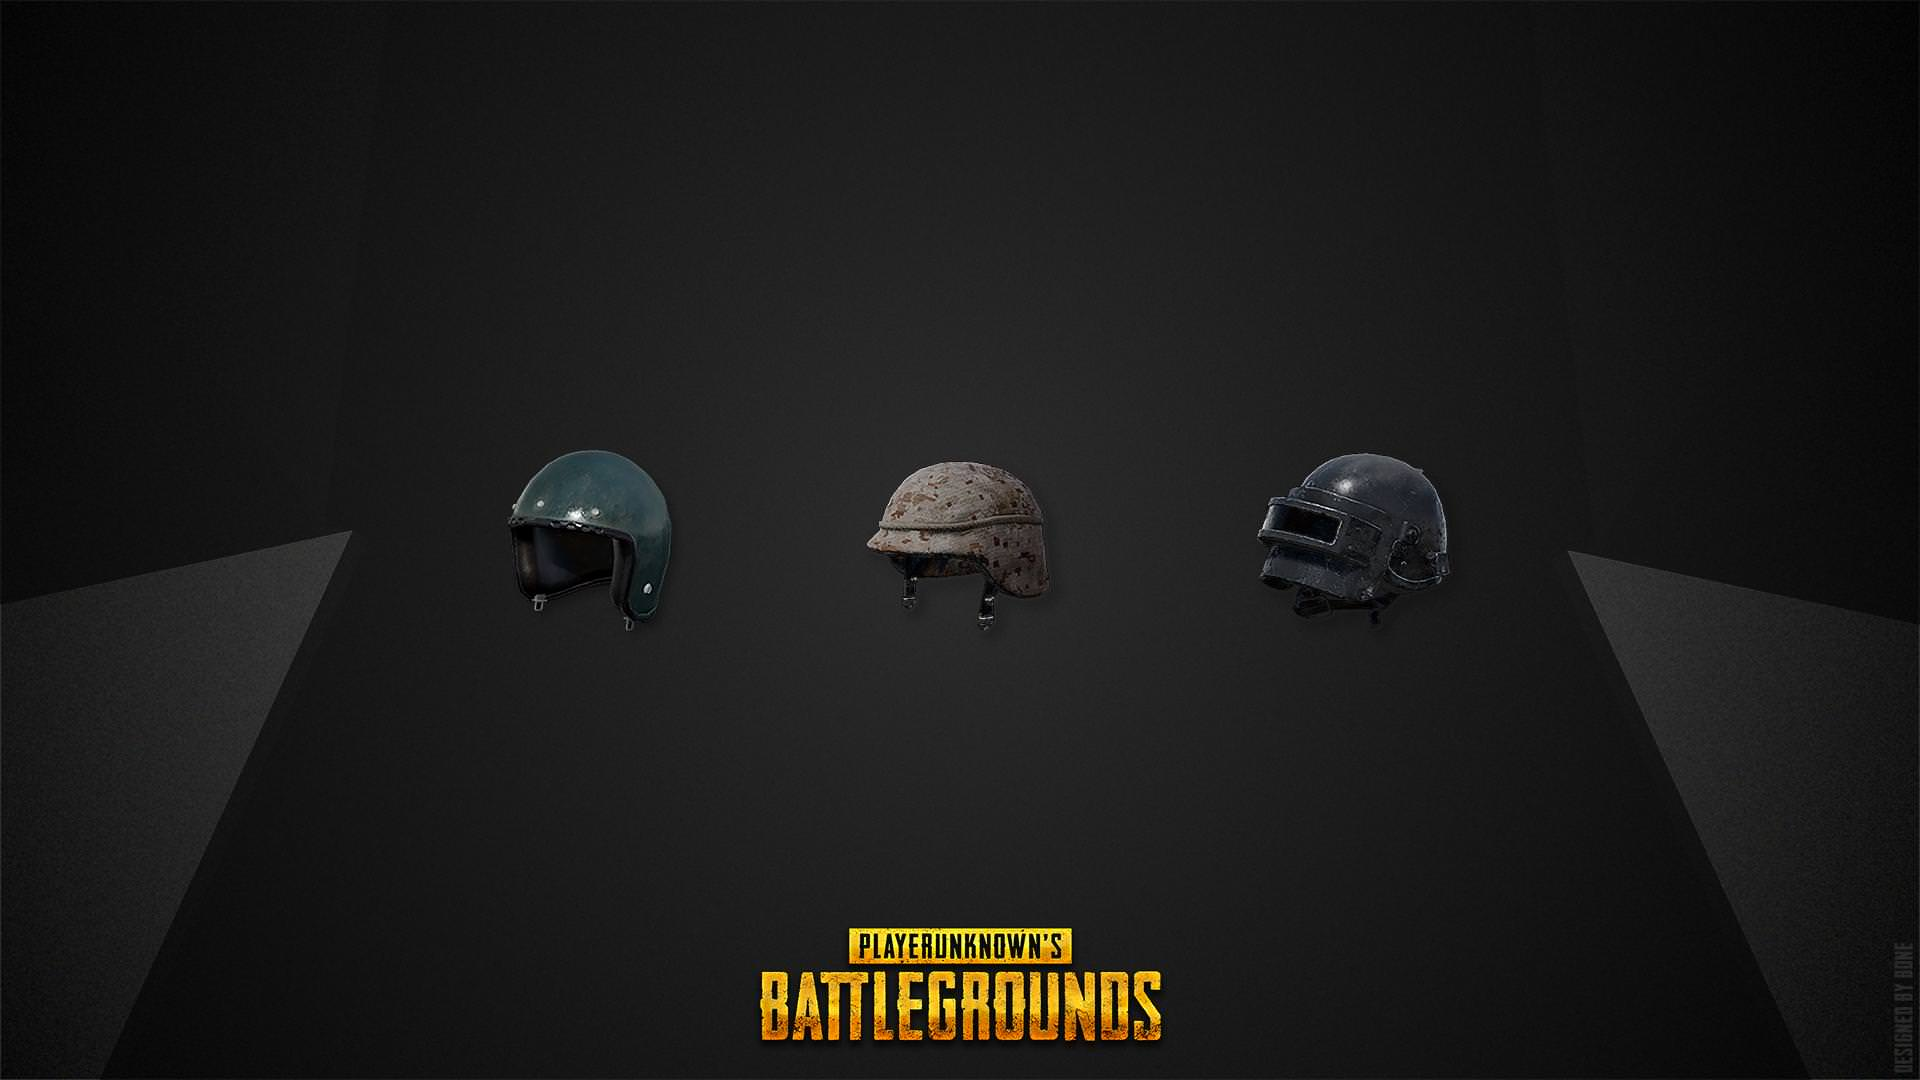 Pubg Mobile Helmet Wallpaper Pubg Pubgwallpapers: PUBG Black Wallpapers